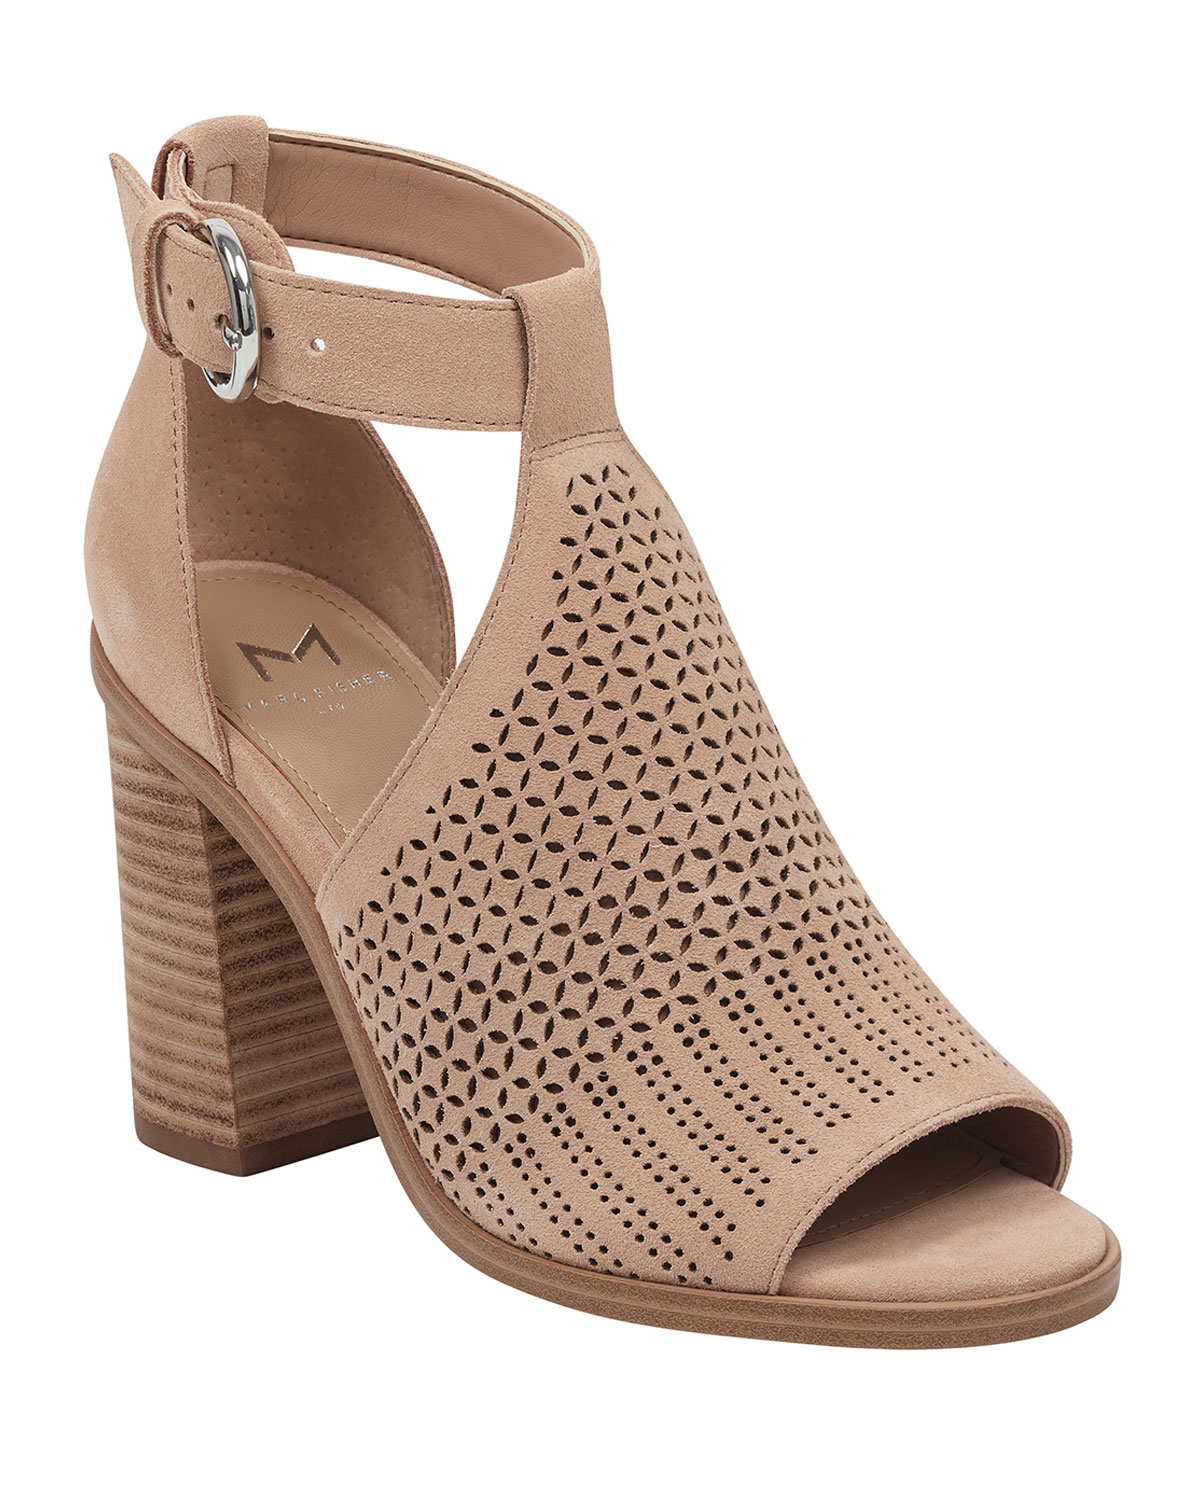 Vixen Cutout Suede Sandals